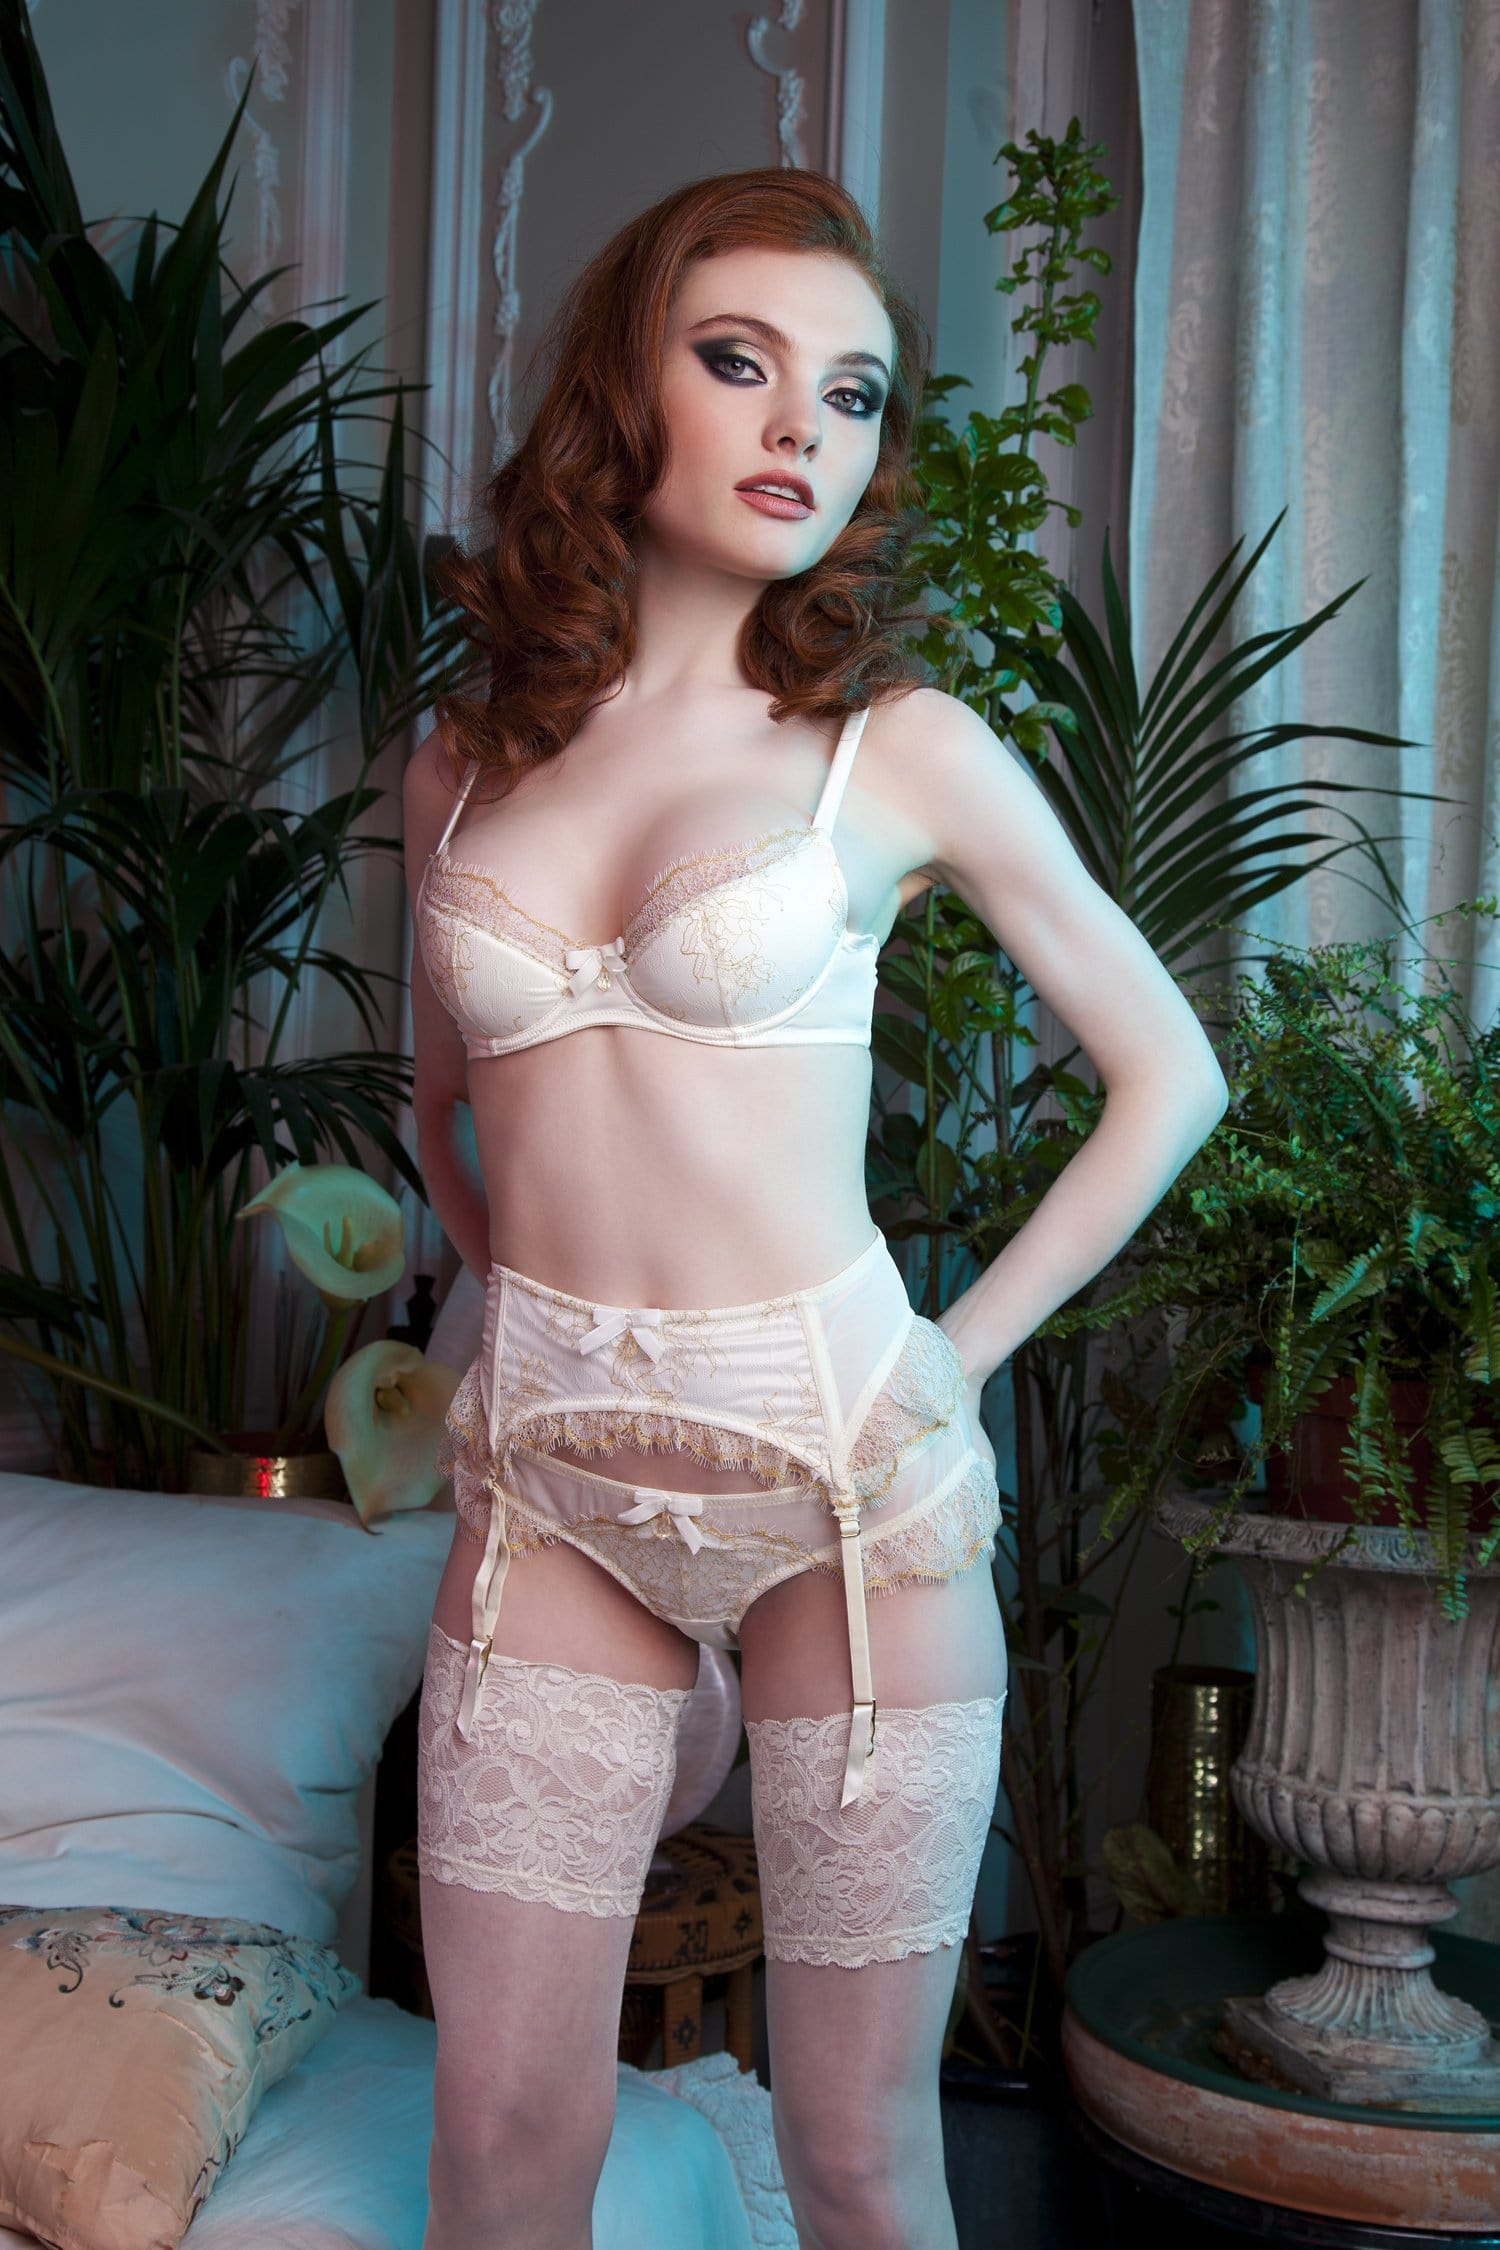 d4da3a43620 Karine Bridal Ivory Gold Bra A-D Cups - Playful Promises USA